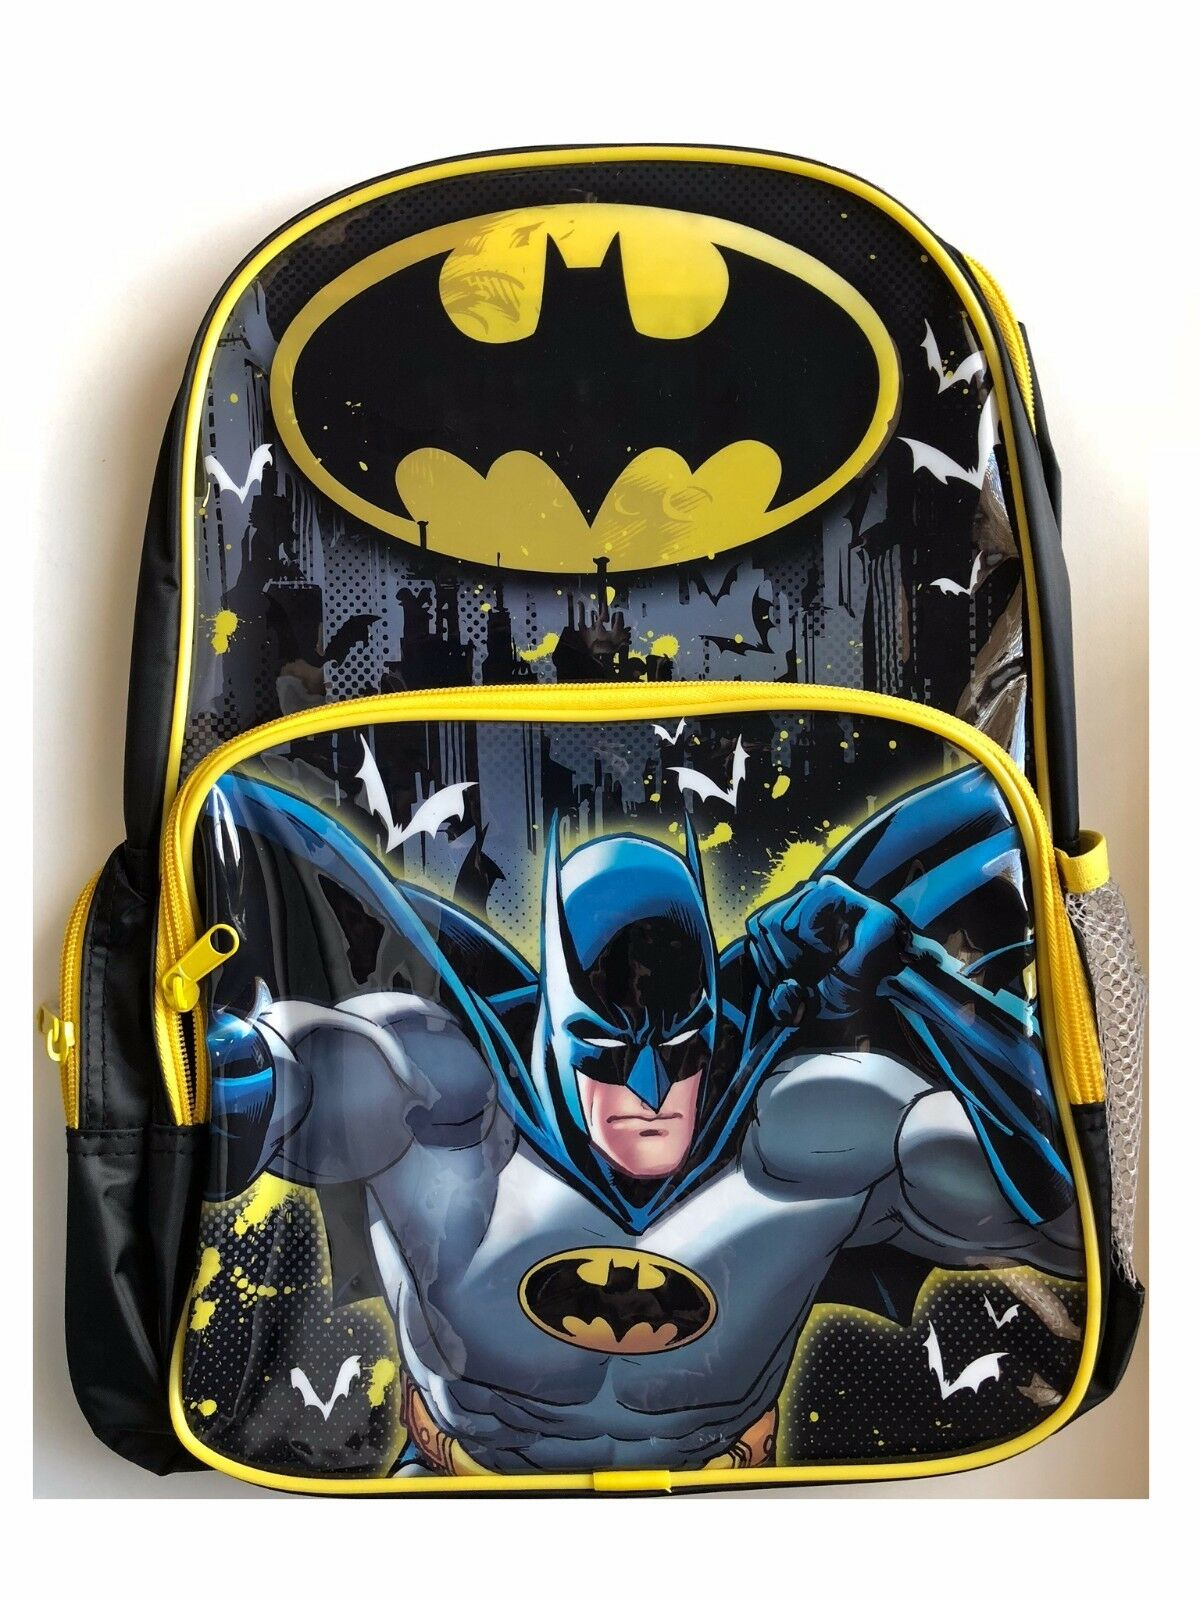 7764009a7426 Details about Batman Backpack DC Comics School PreSchool Daycare Bag New  Boys Kids Super Heros